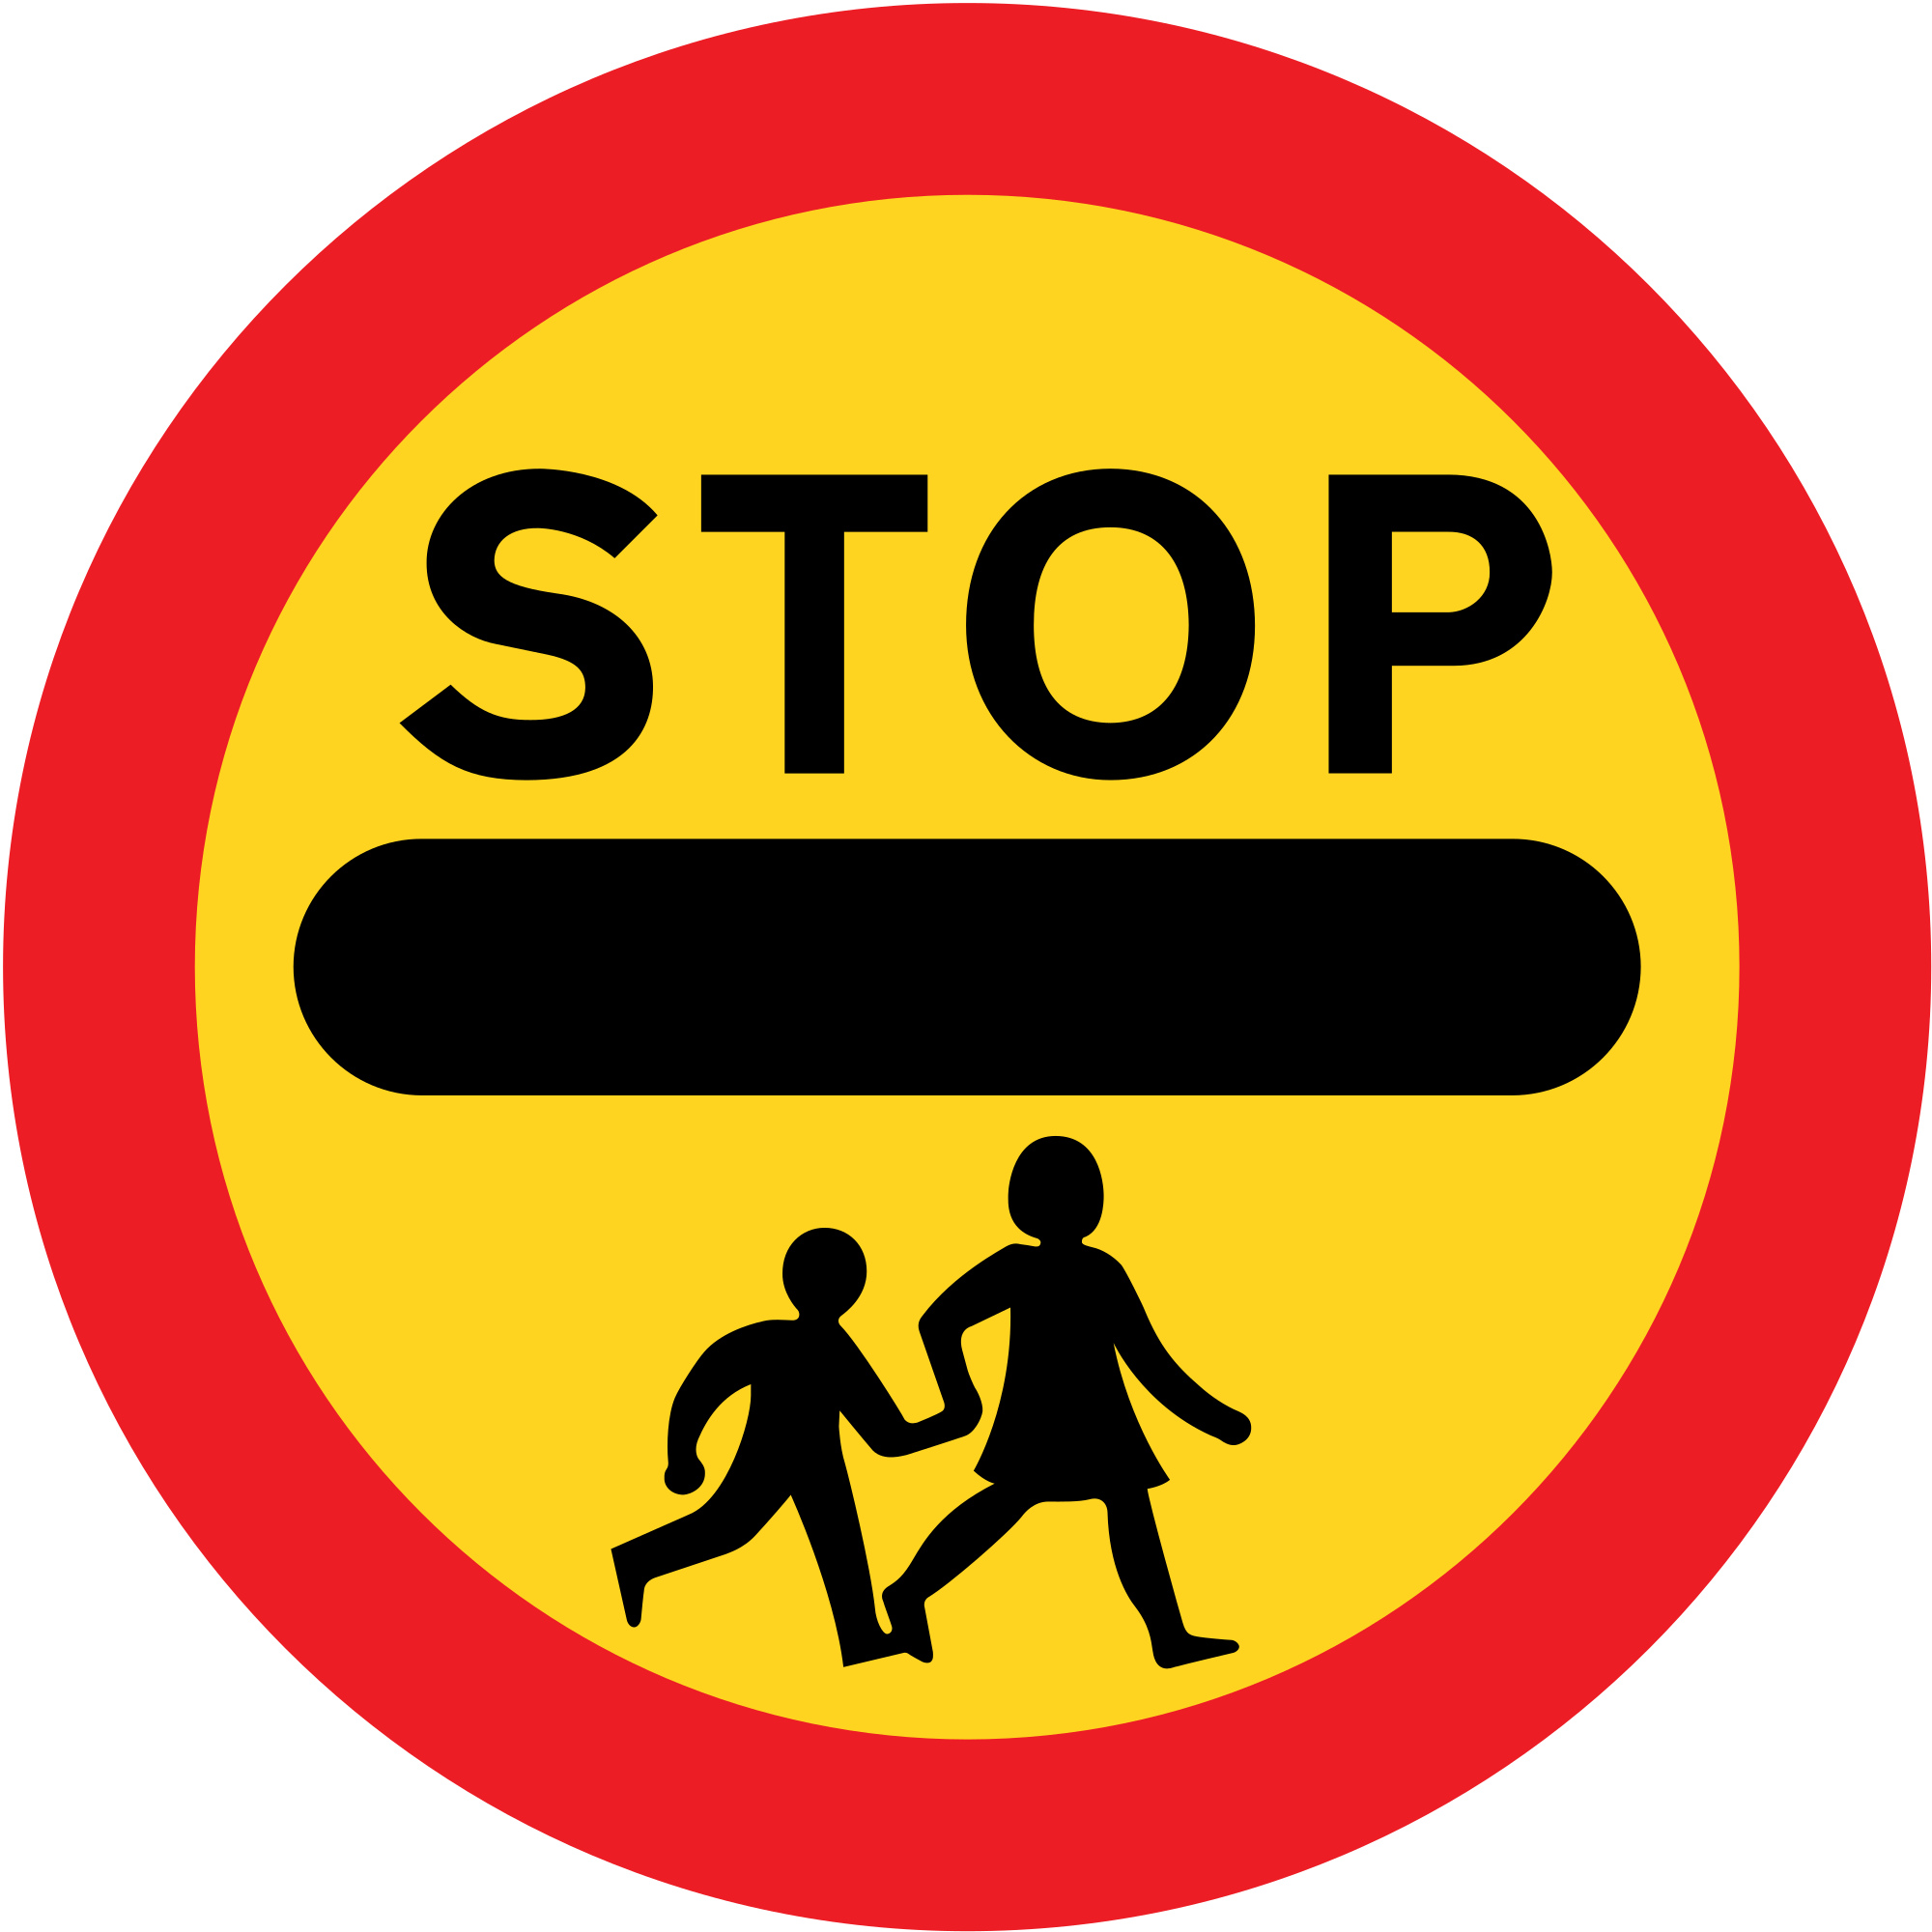 Patrol clipart school traffic. File uk sign svg